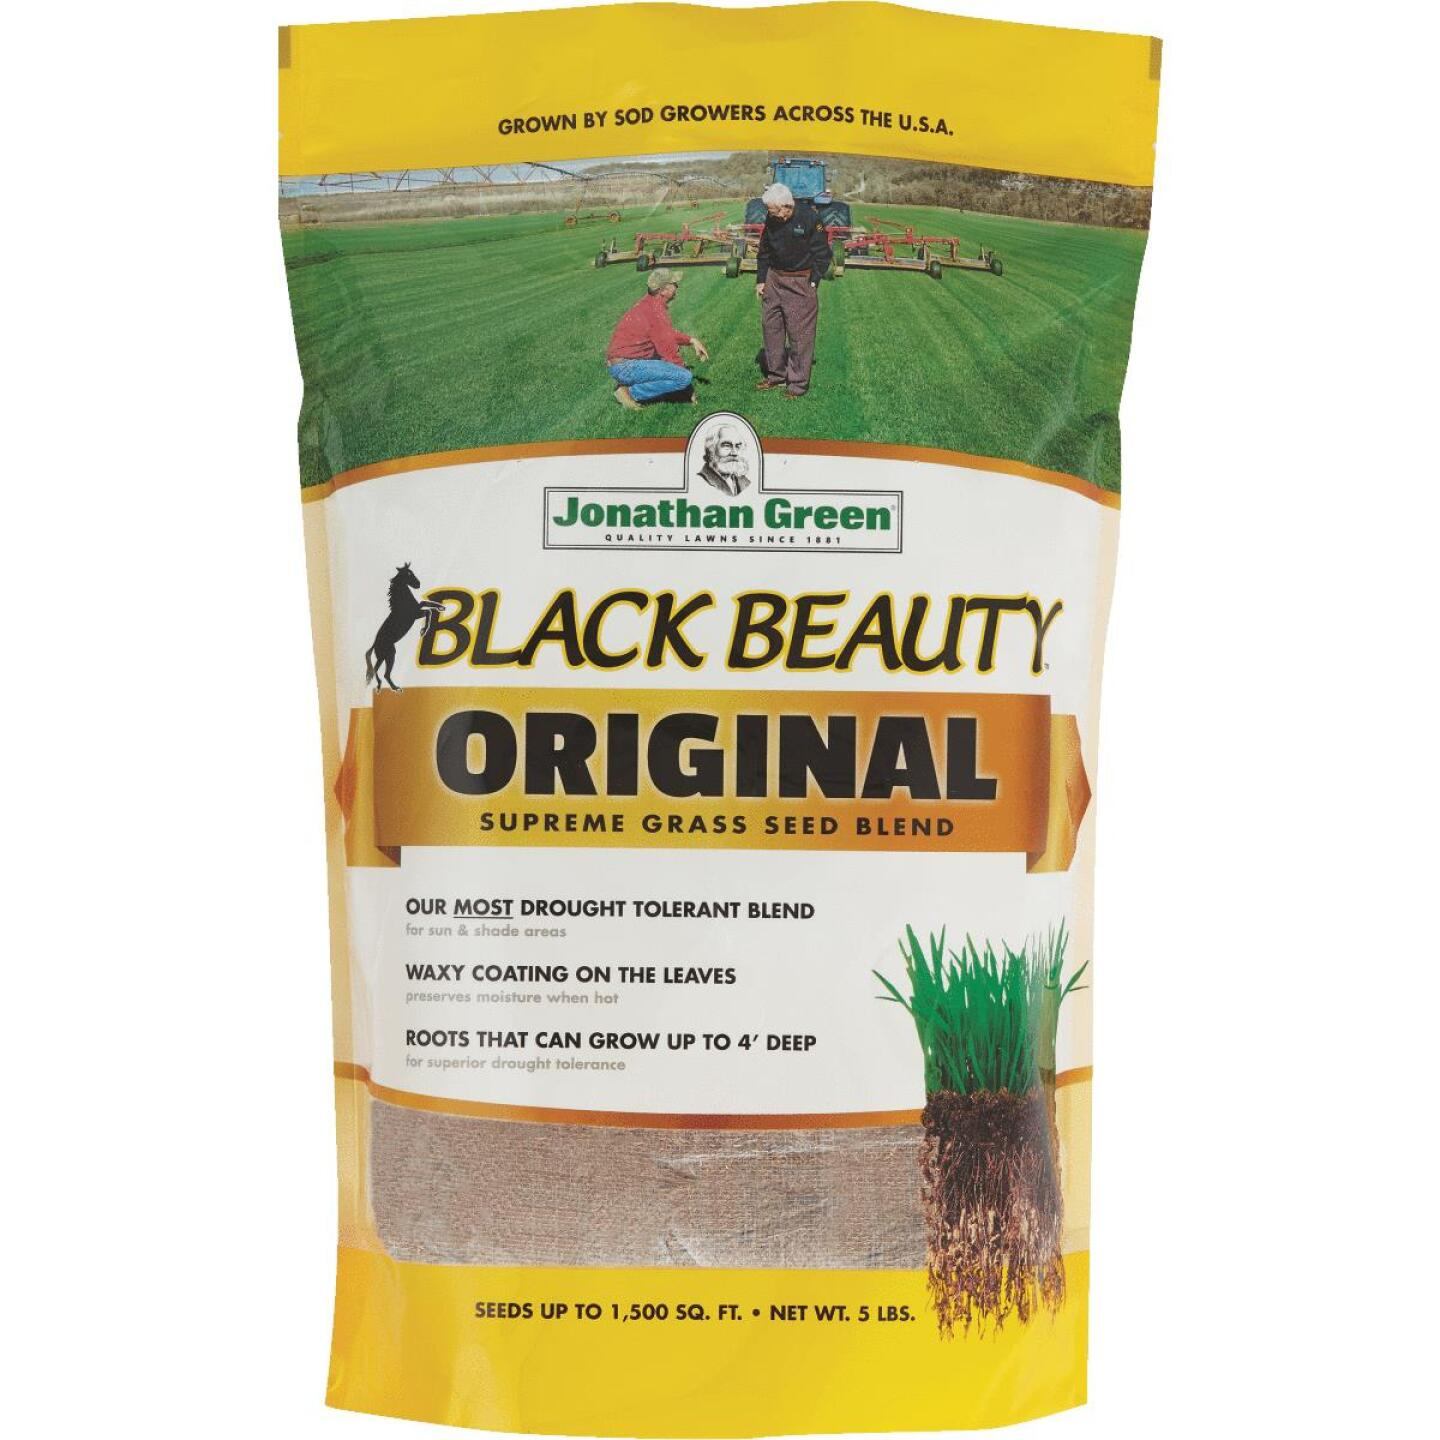 Jonathan Green Black Beauty 5 Lb. 750 Sq. Ft. Coverage 100% Tall Fescue Grass Seed Image 1